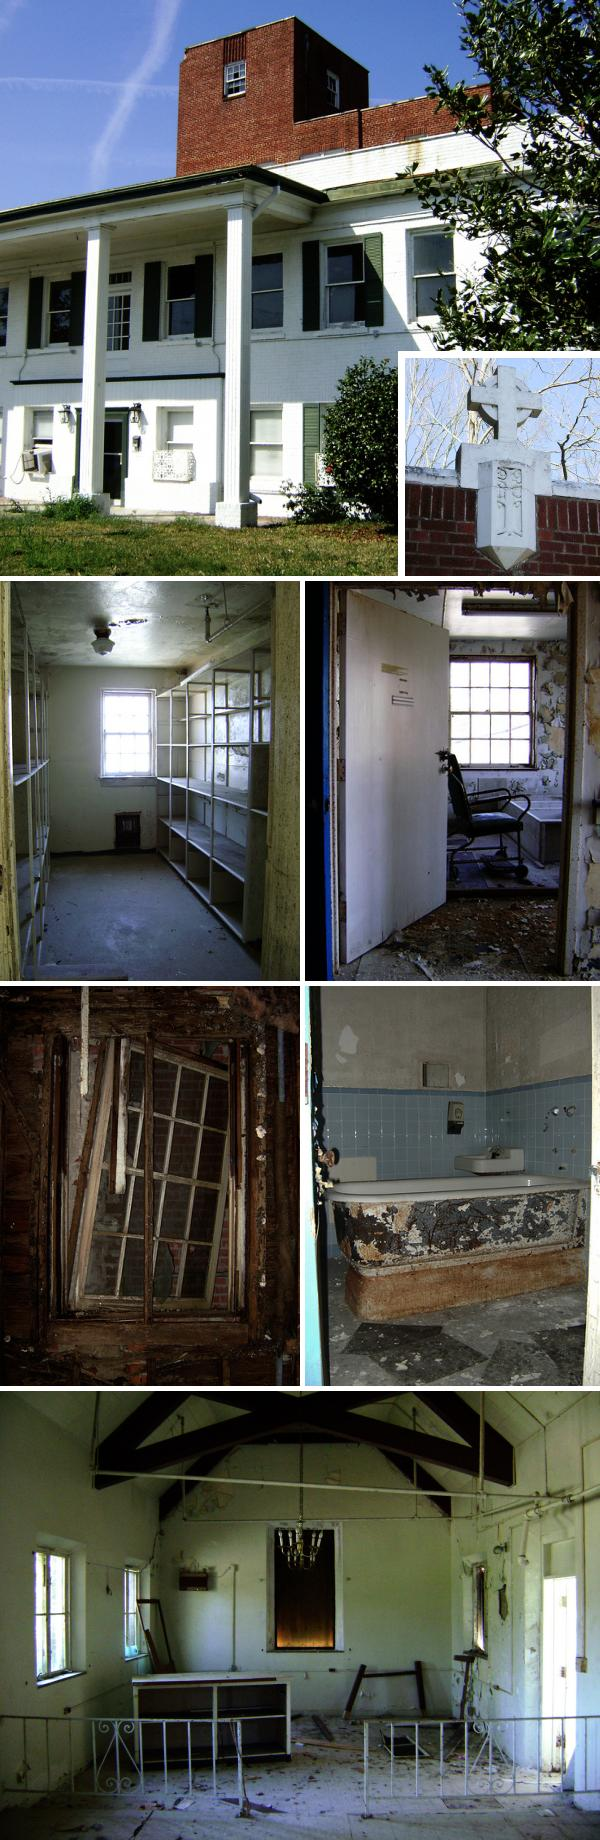 Old Mercy Hospital, Liberty, Texas abandoned in the 1980